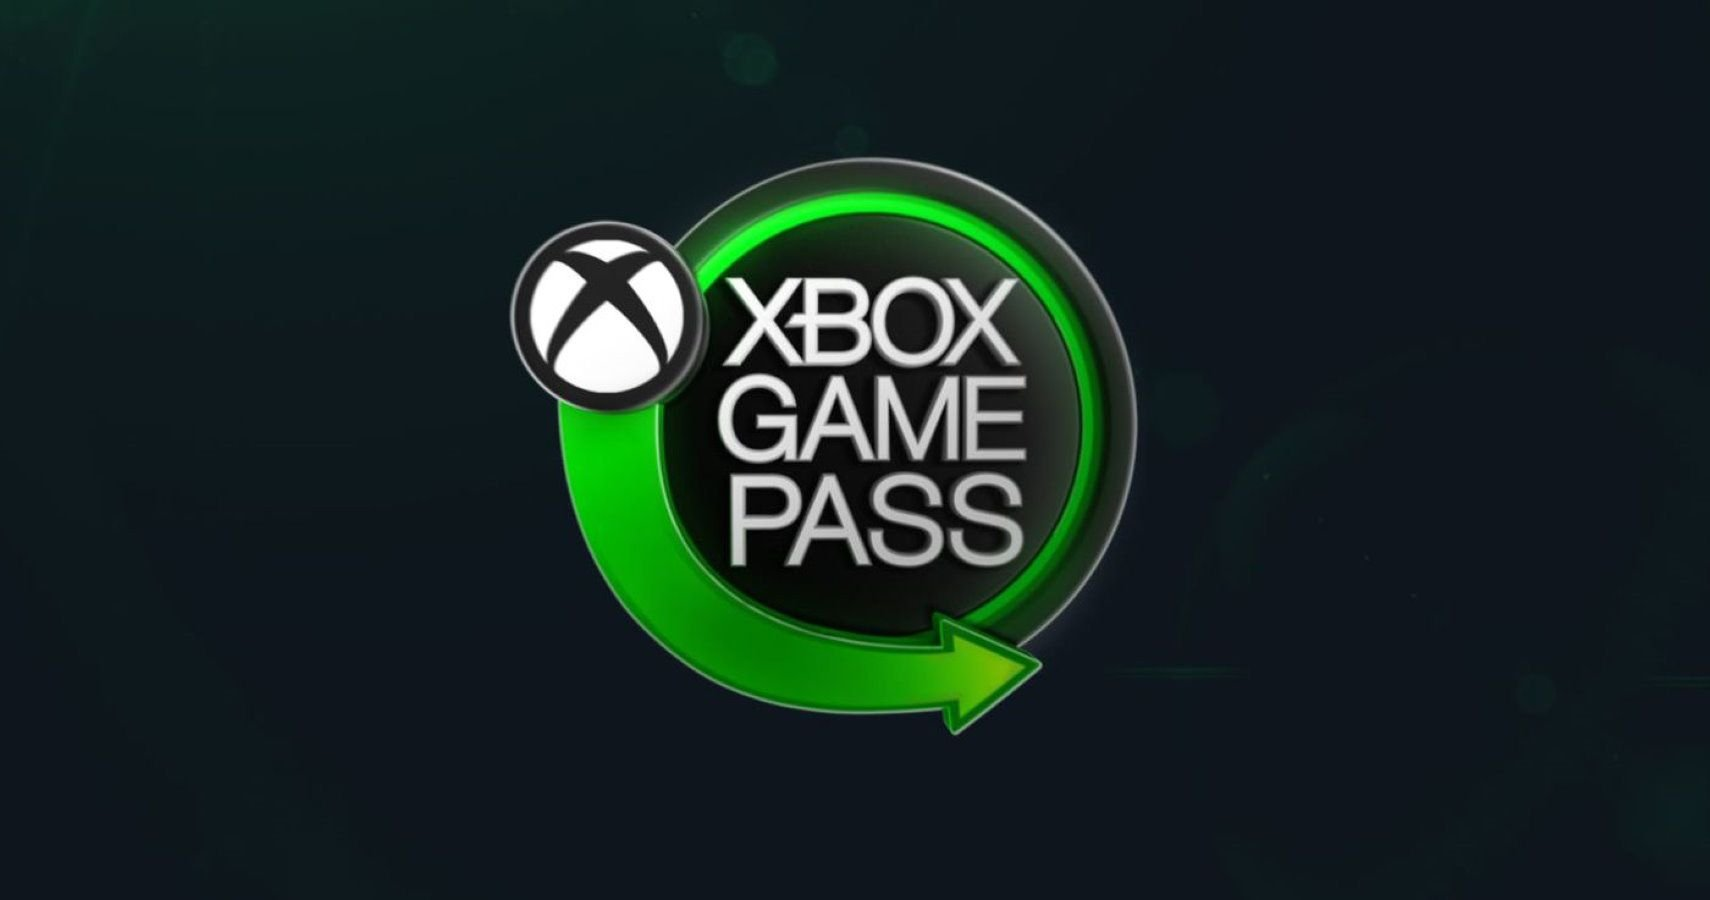 Microsoft Announces Quarterly Release Of First-Party Titles On Xbox Game Pass